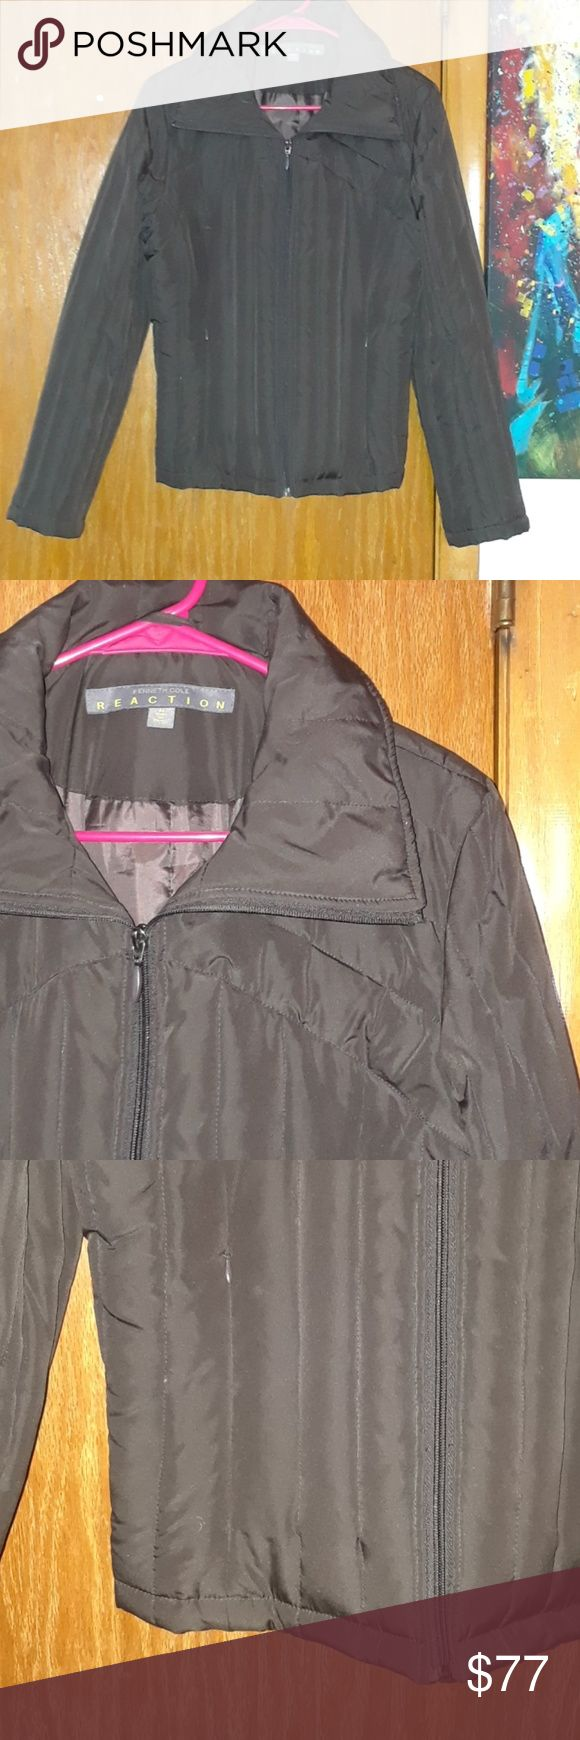 KENNETH COLE DOWN JACKET Beauti ful chocolate brown Kenneth Cole Reaction down jacket, size medium.  %20 OFF BUNDLES OF TWO!  BUNDLE LIKES OF 3 OR MORE FOR A PRIVATE DISCOUNT!  LITRRALLY TRYING TO EMPTY MY CLOSET LADIES!   EVERYTHING $8 OR UNDER IS 5 FOR $20  CHECK ME OUT!   TELL ME WHAT YOU WANT,  WHAT YOU REALLY REALLY WANT ❤ Kenneth Cole Reaction Jackets & Coats Puffers